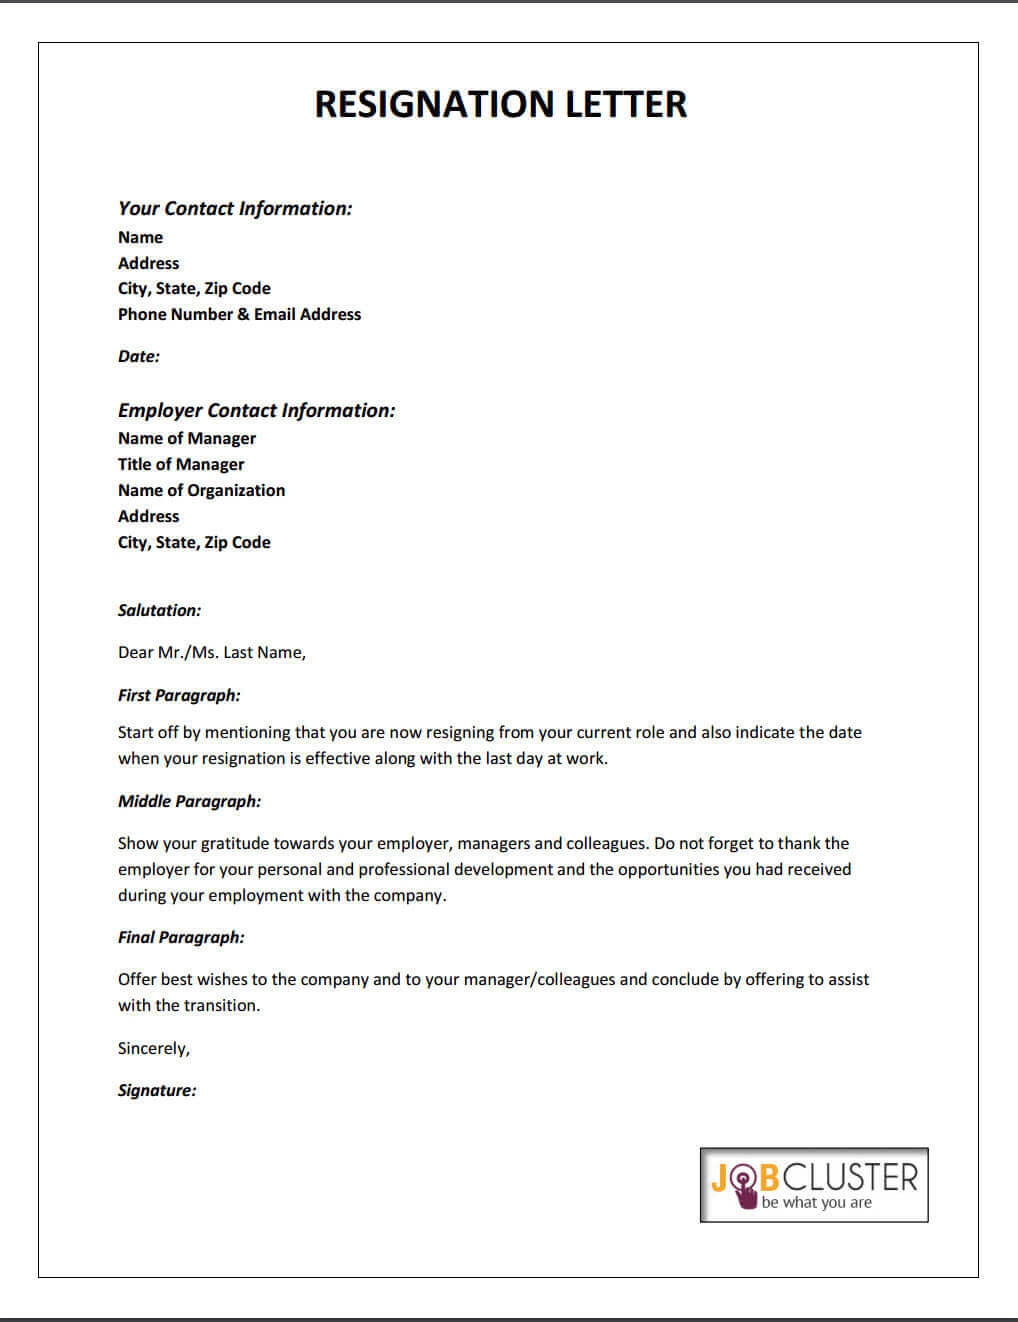 Resignation Letter To Manager Sample from www.jobcluster.com